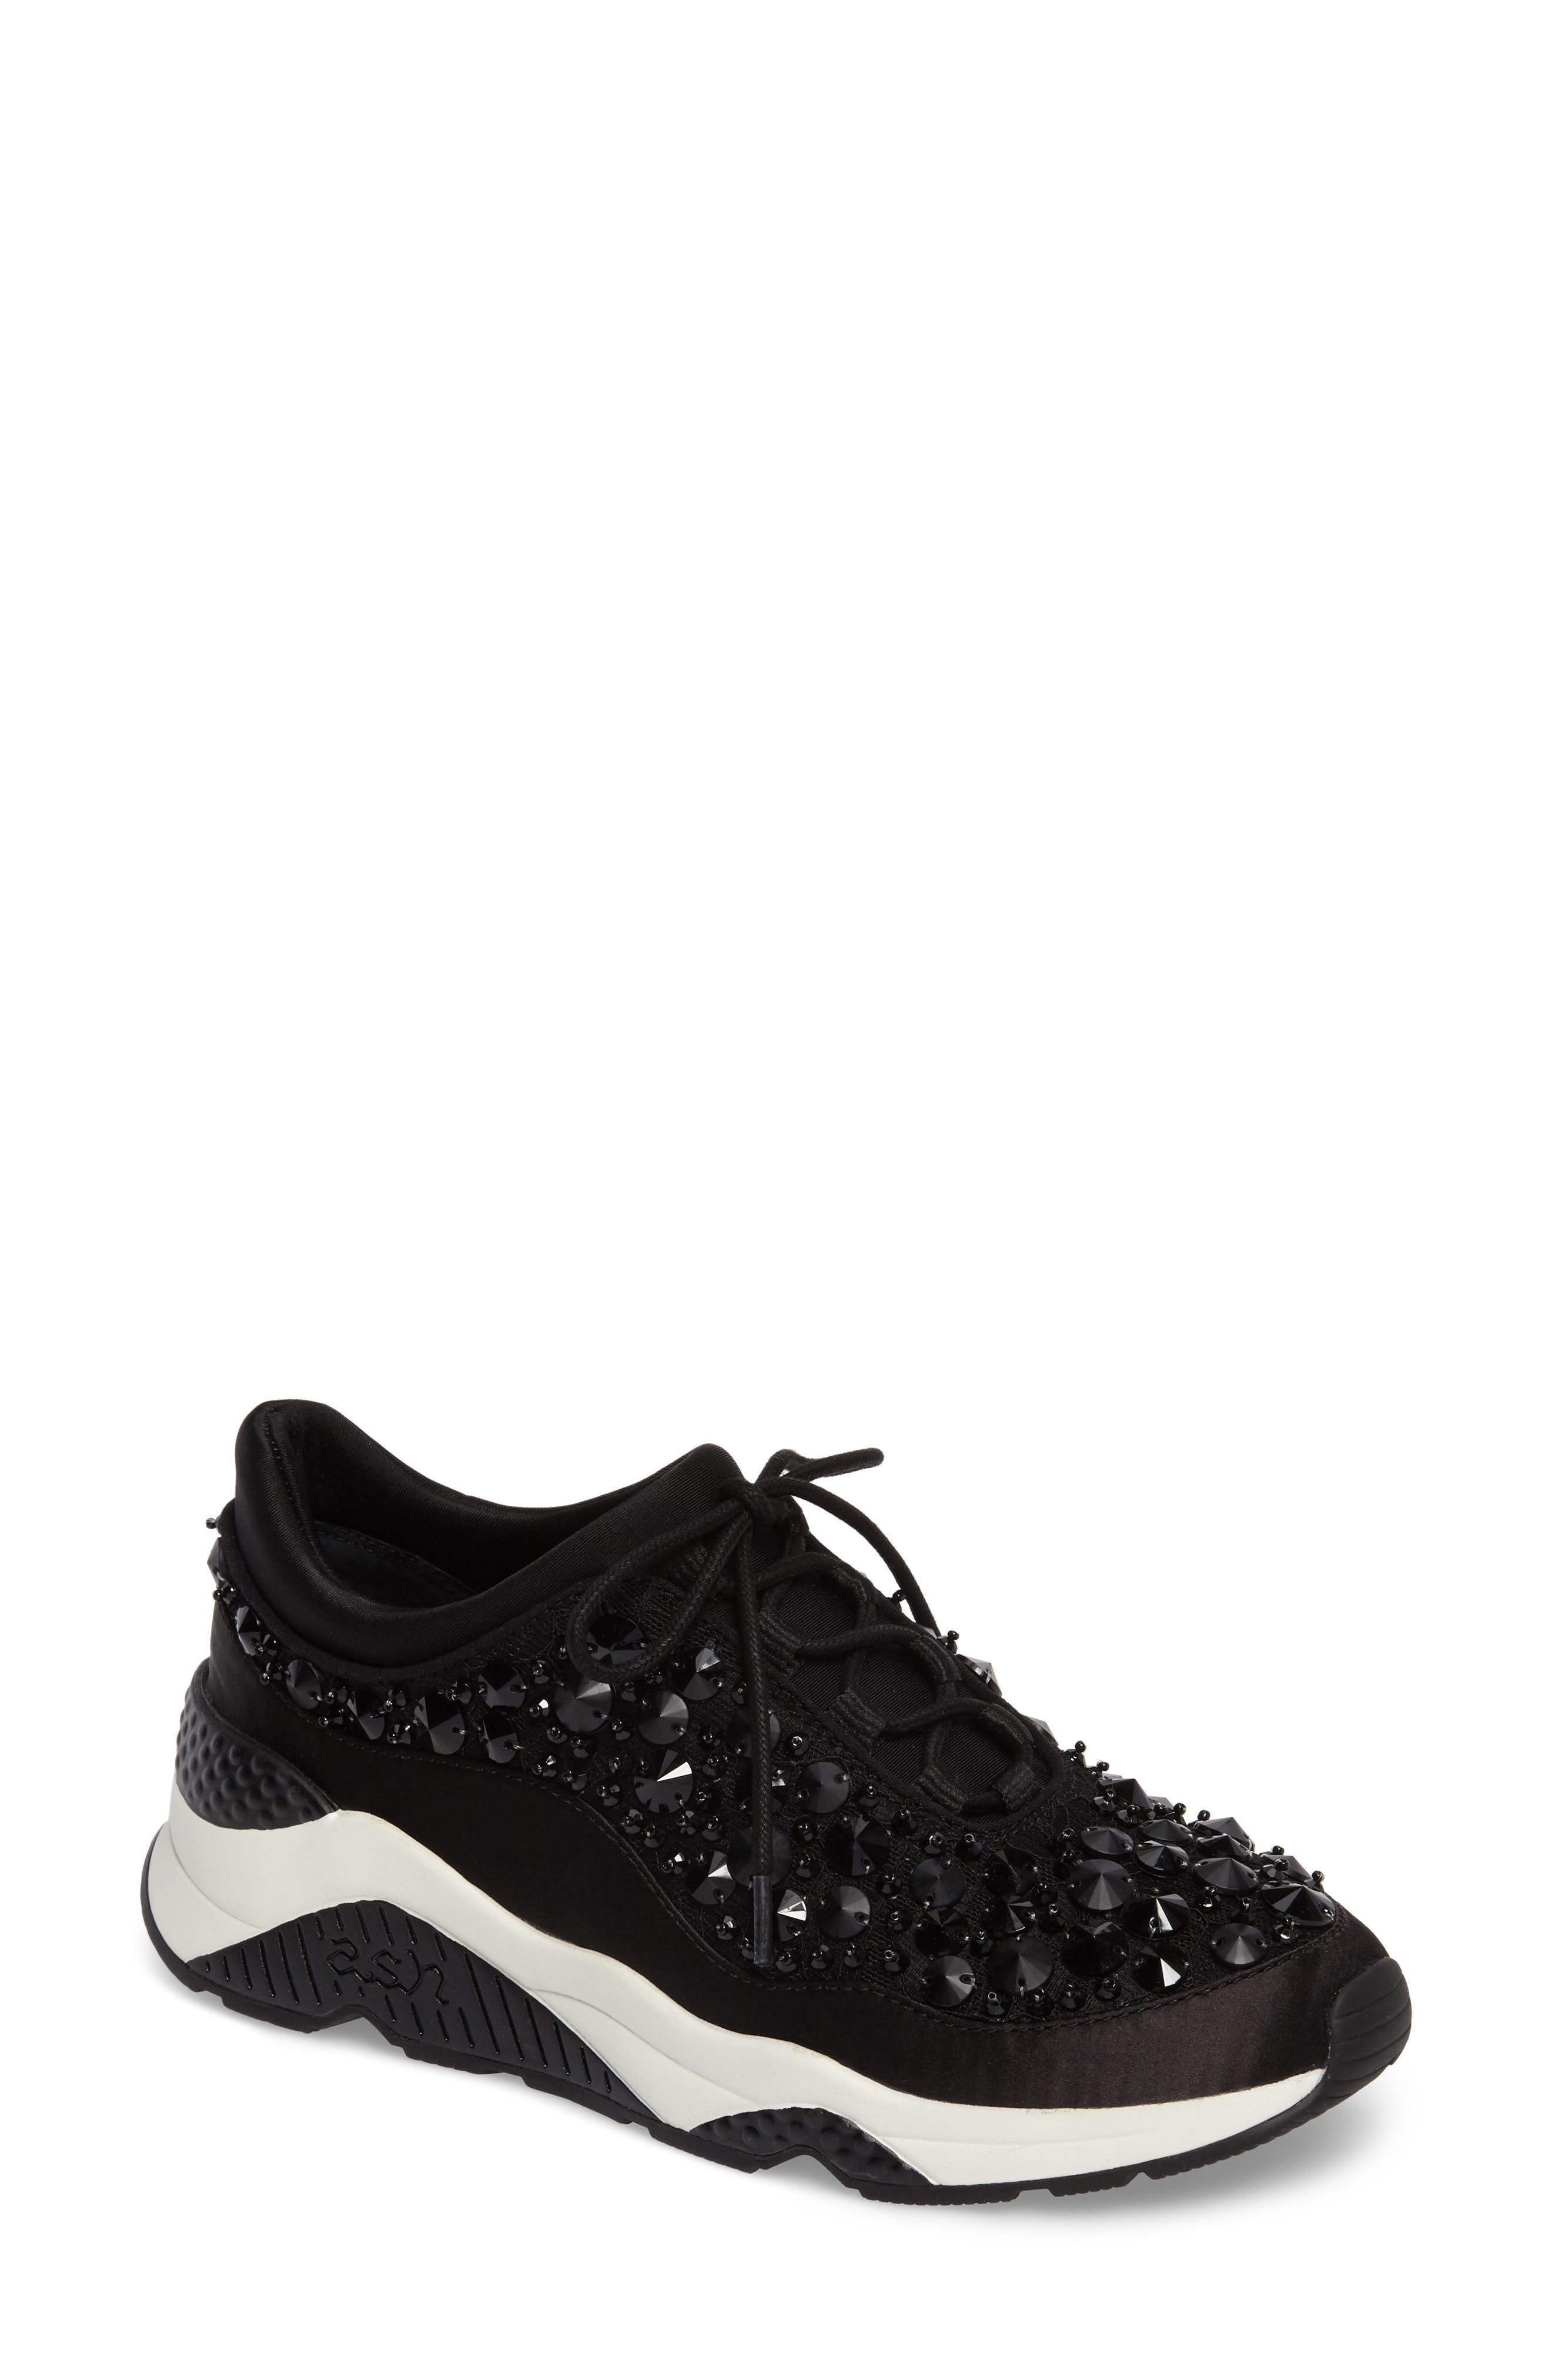 Muse Beads Sneaker,                         Main,                         color, Black/ Black Fabric